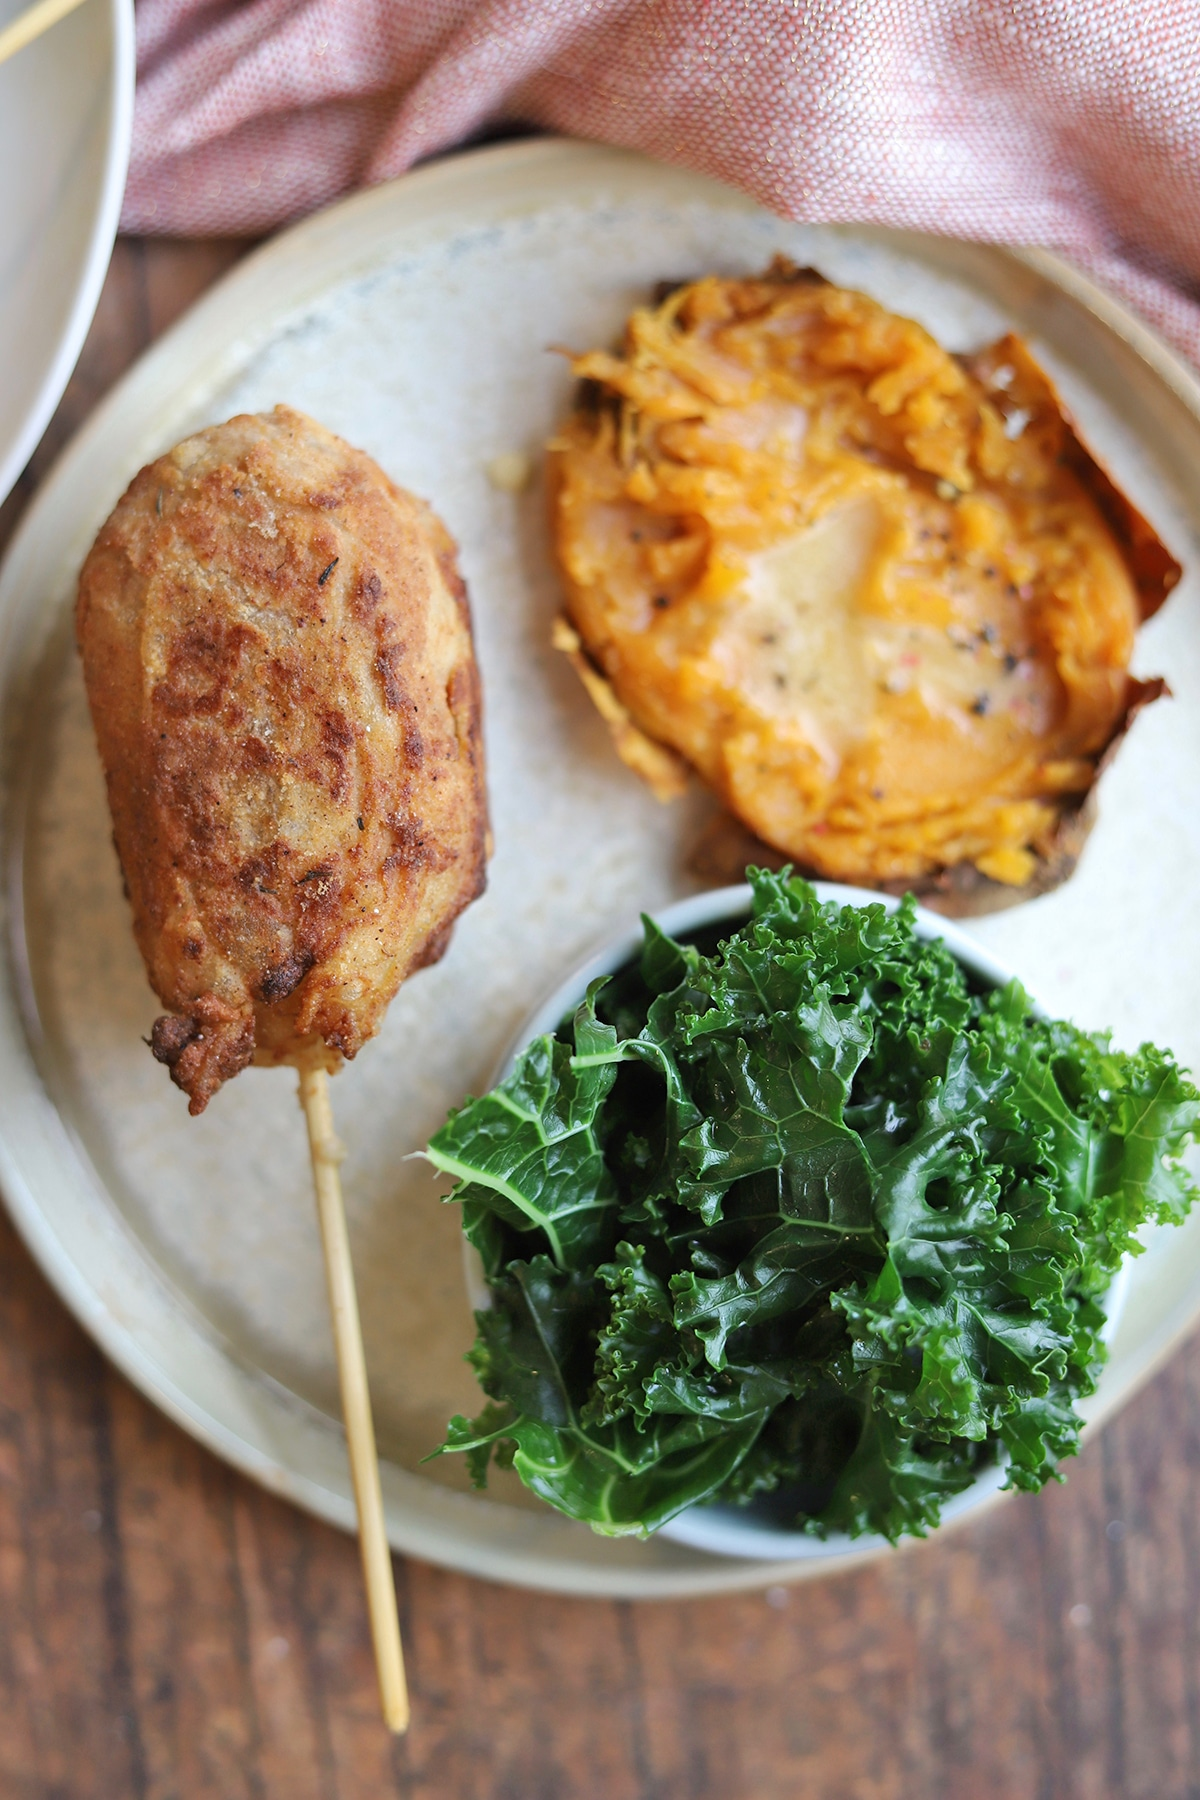 Vegan fried chicken with sweet potato and kale.